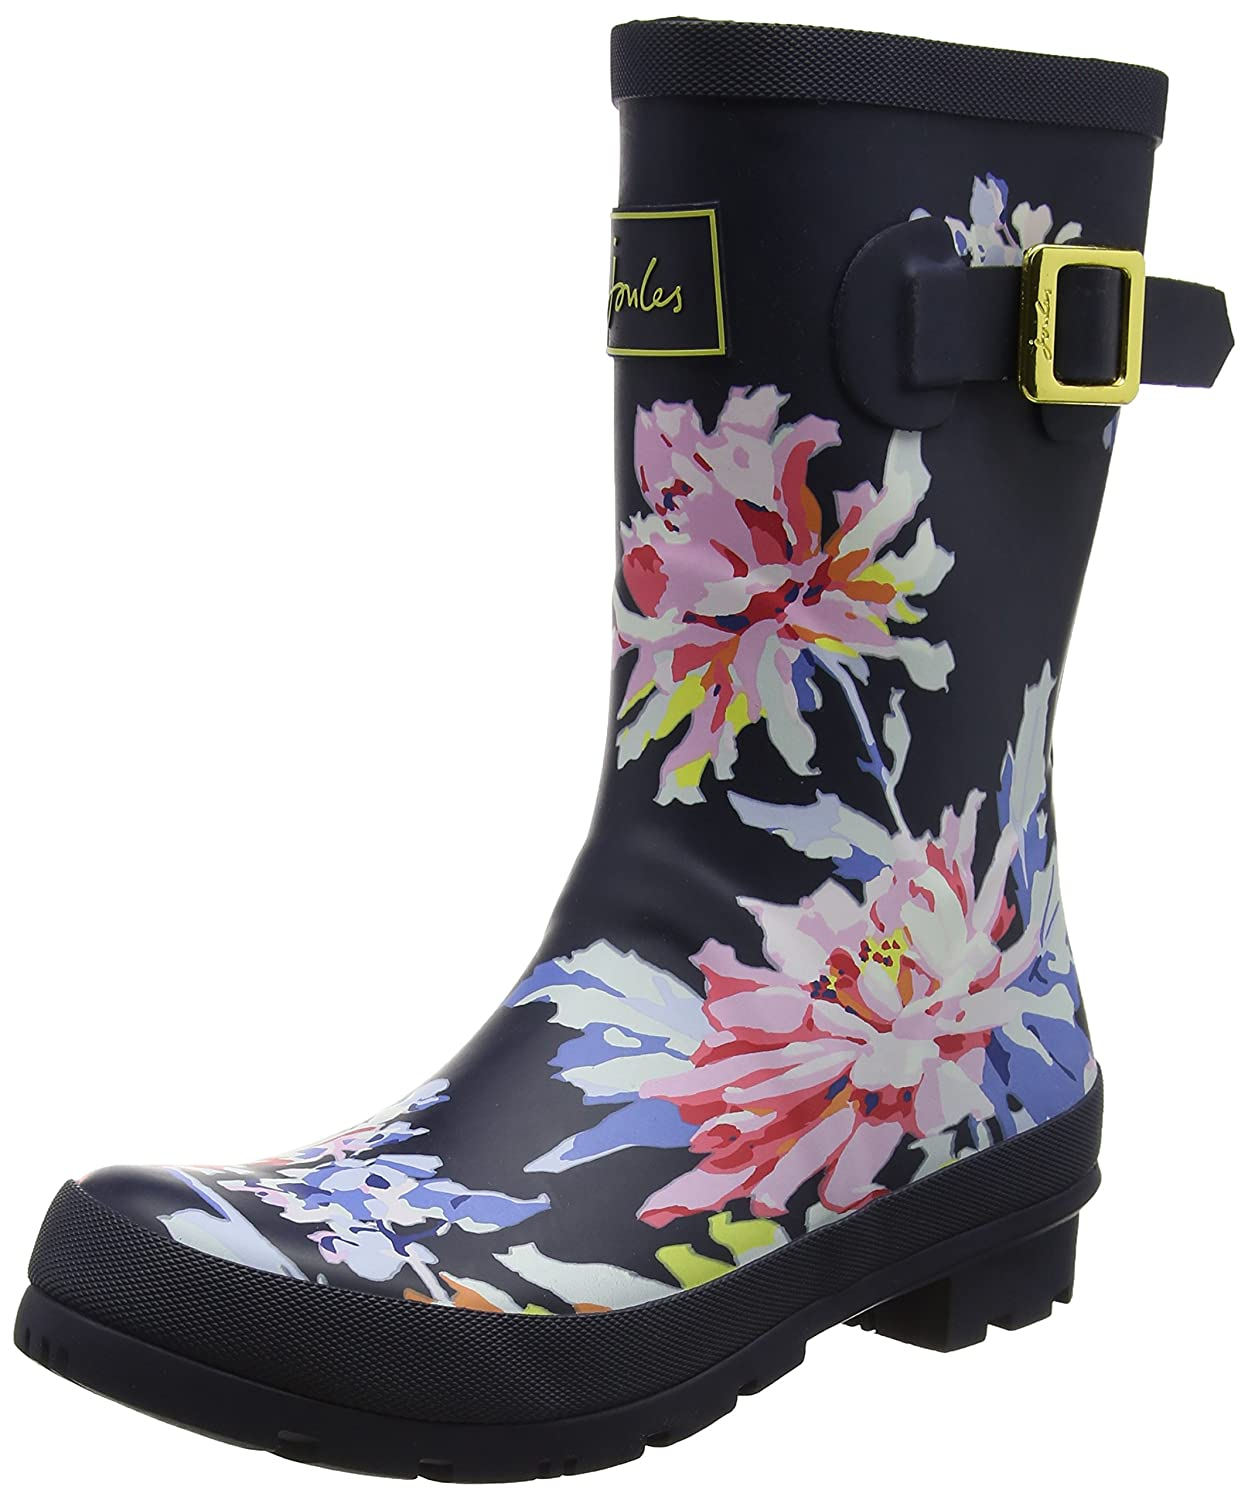 Joules Women's Molly Welly Rain Boot X MOLLYWELLY